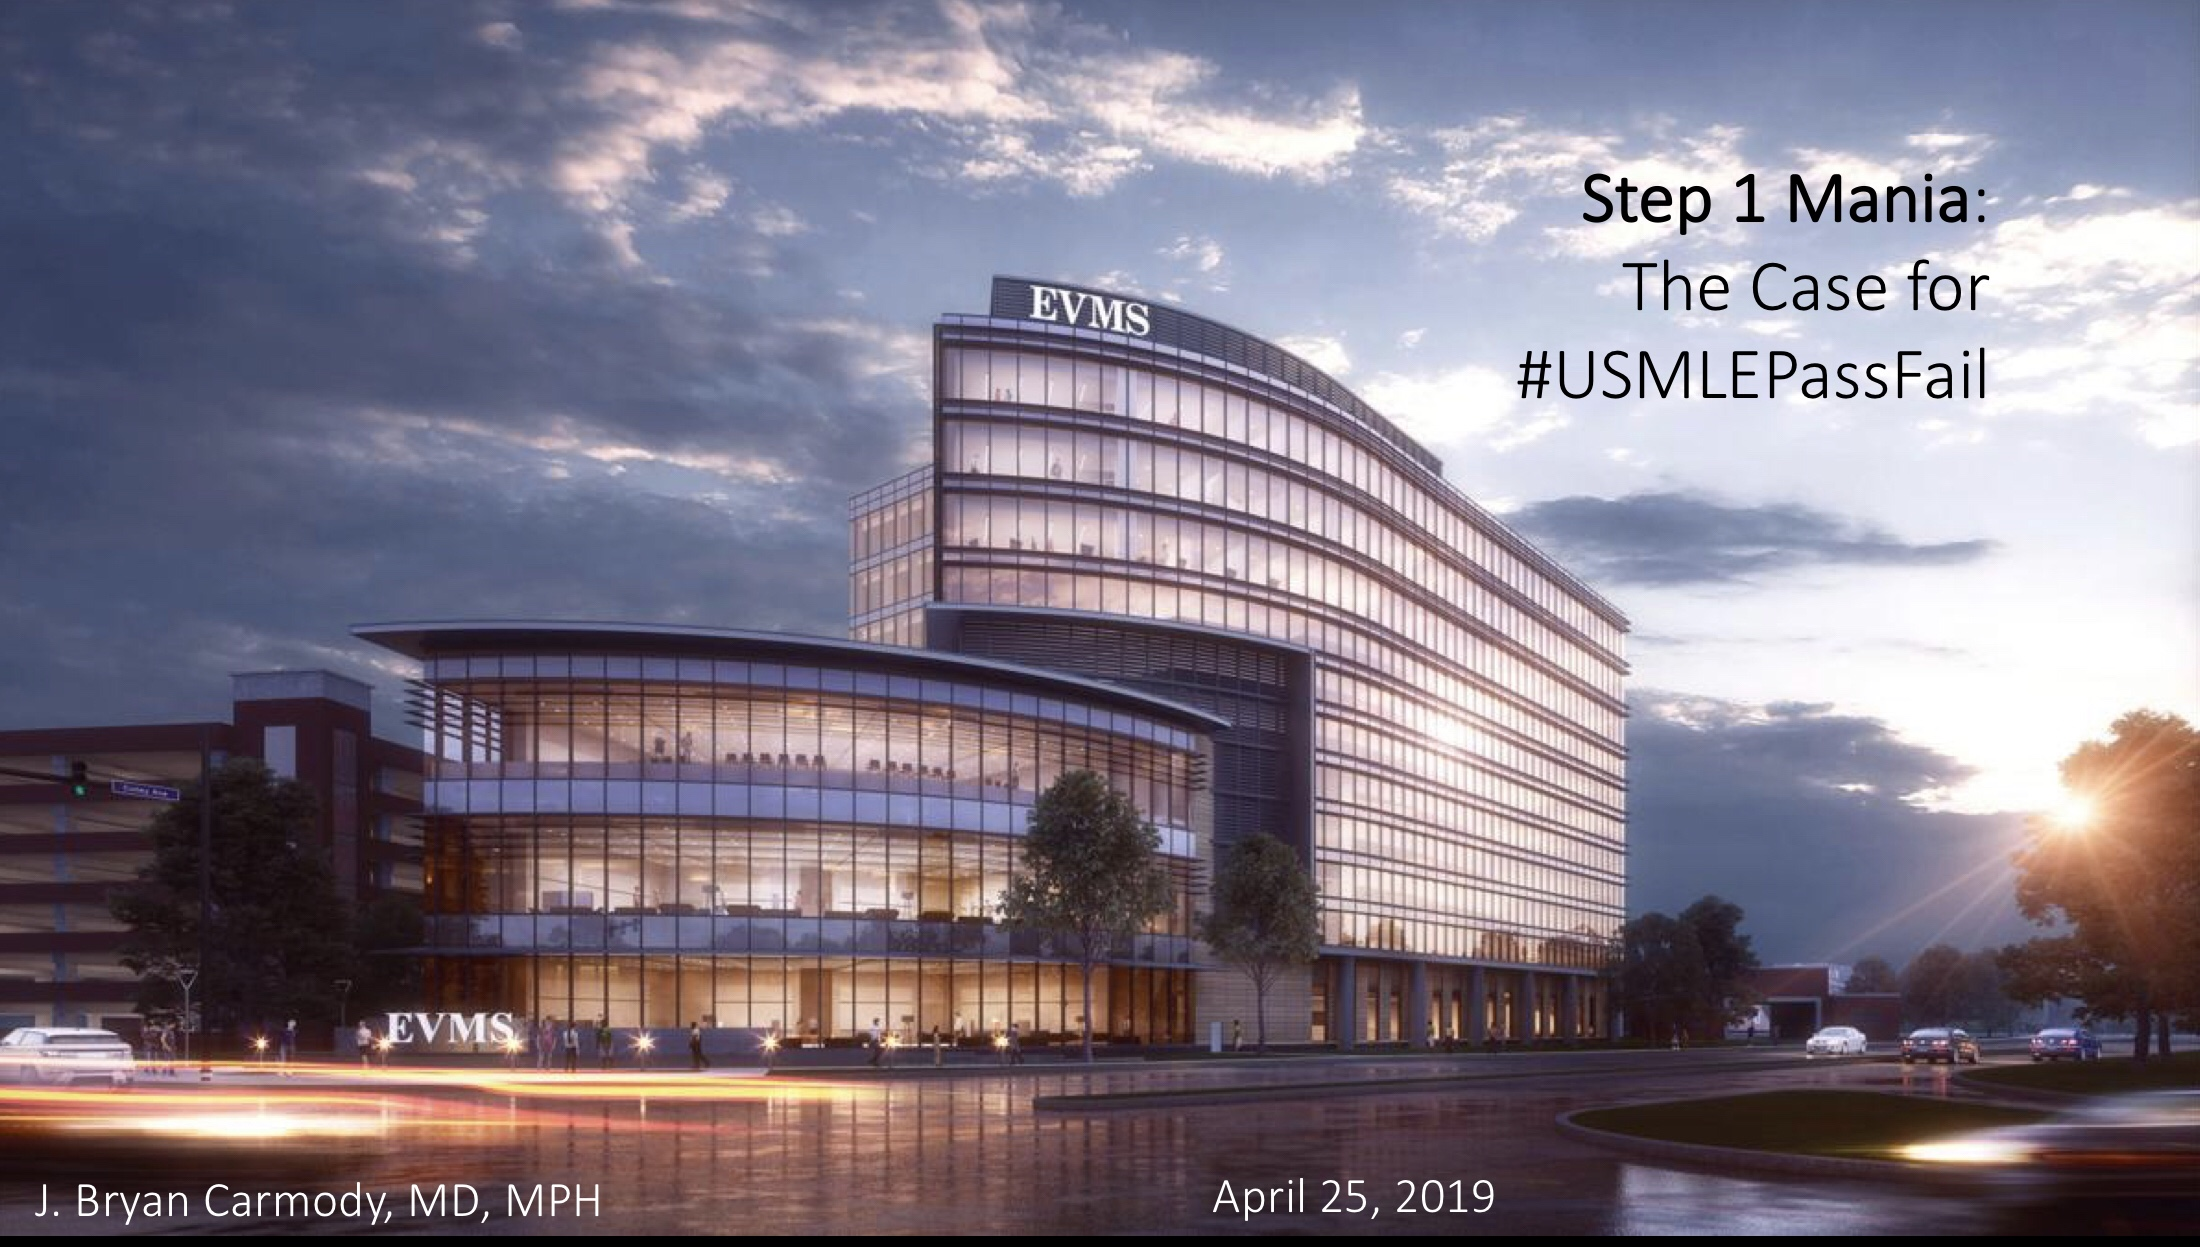 Step 1 Mania: The Case for #USMLEPassFail – The Sheriff of